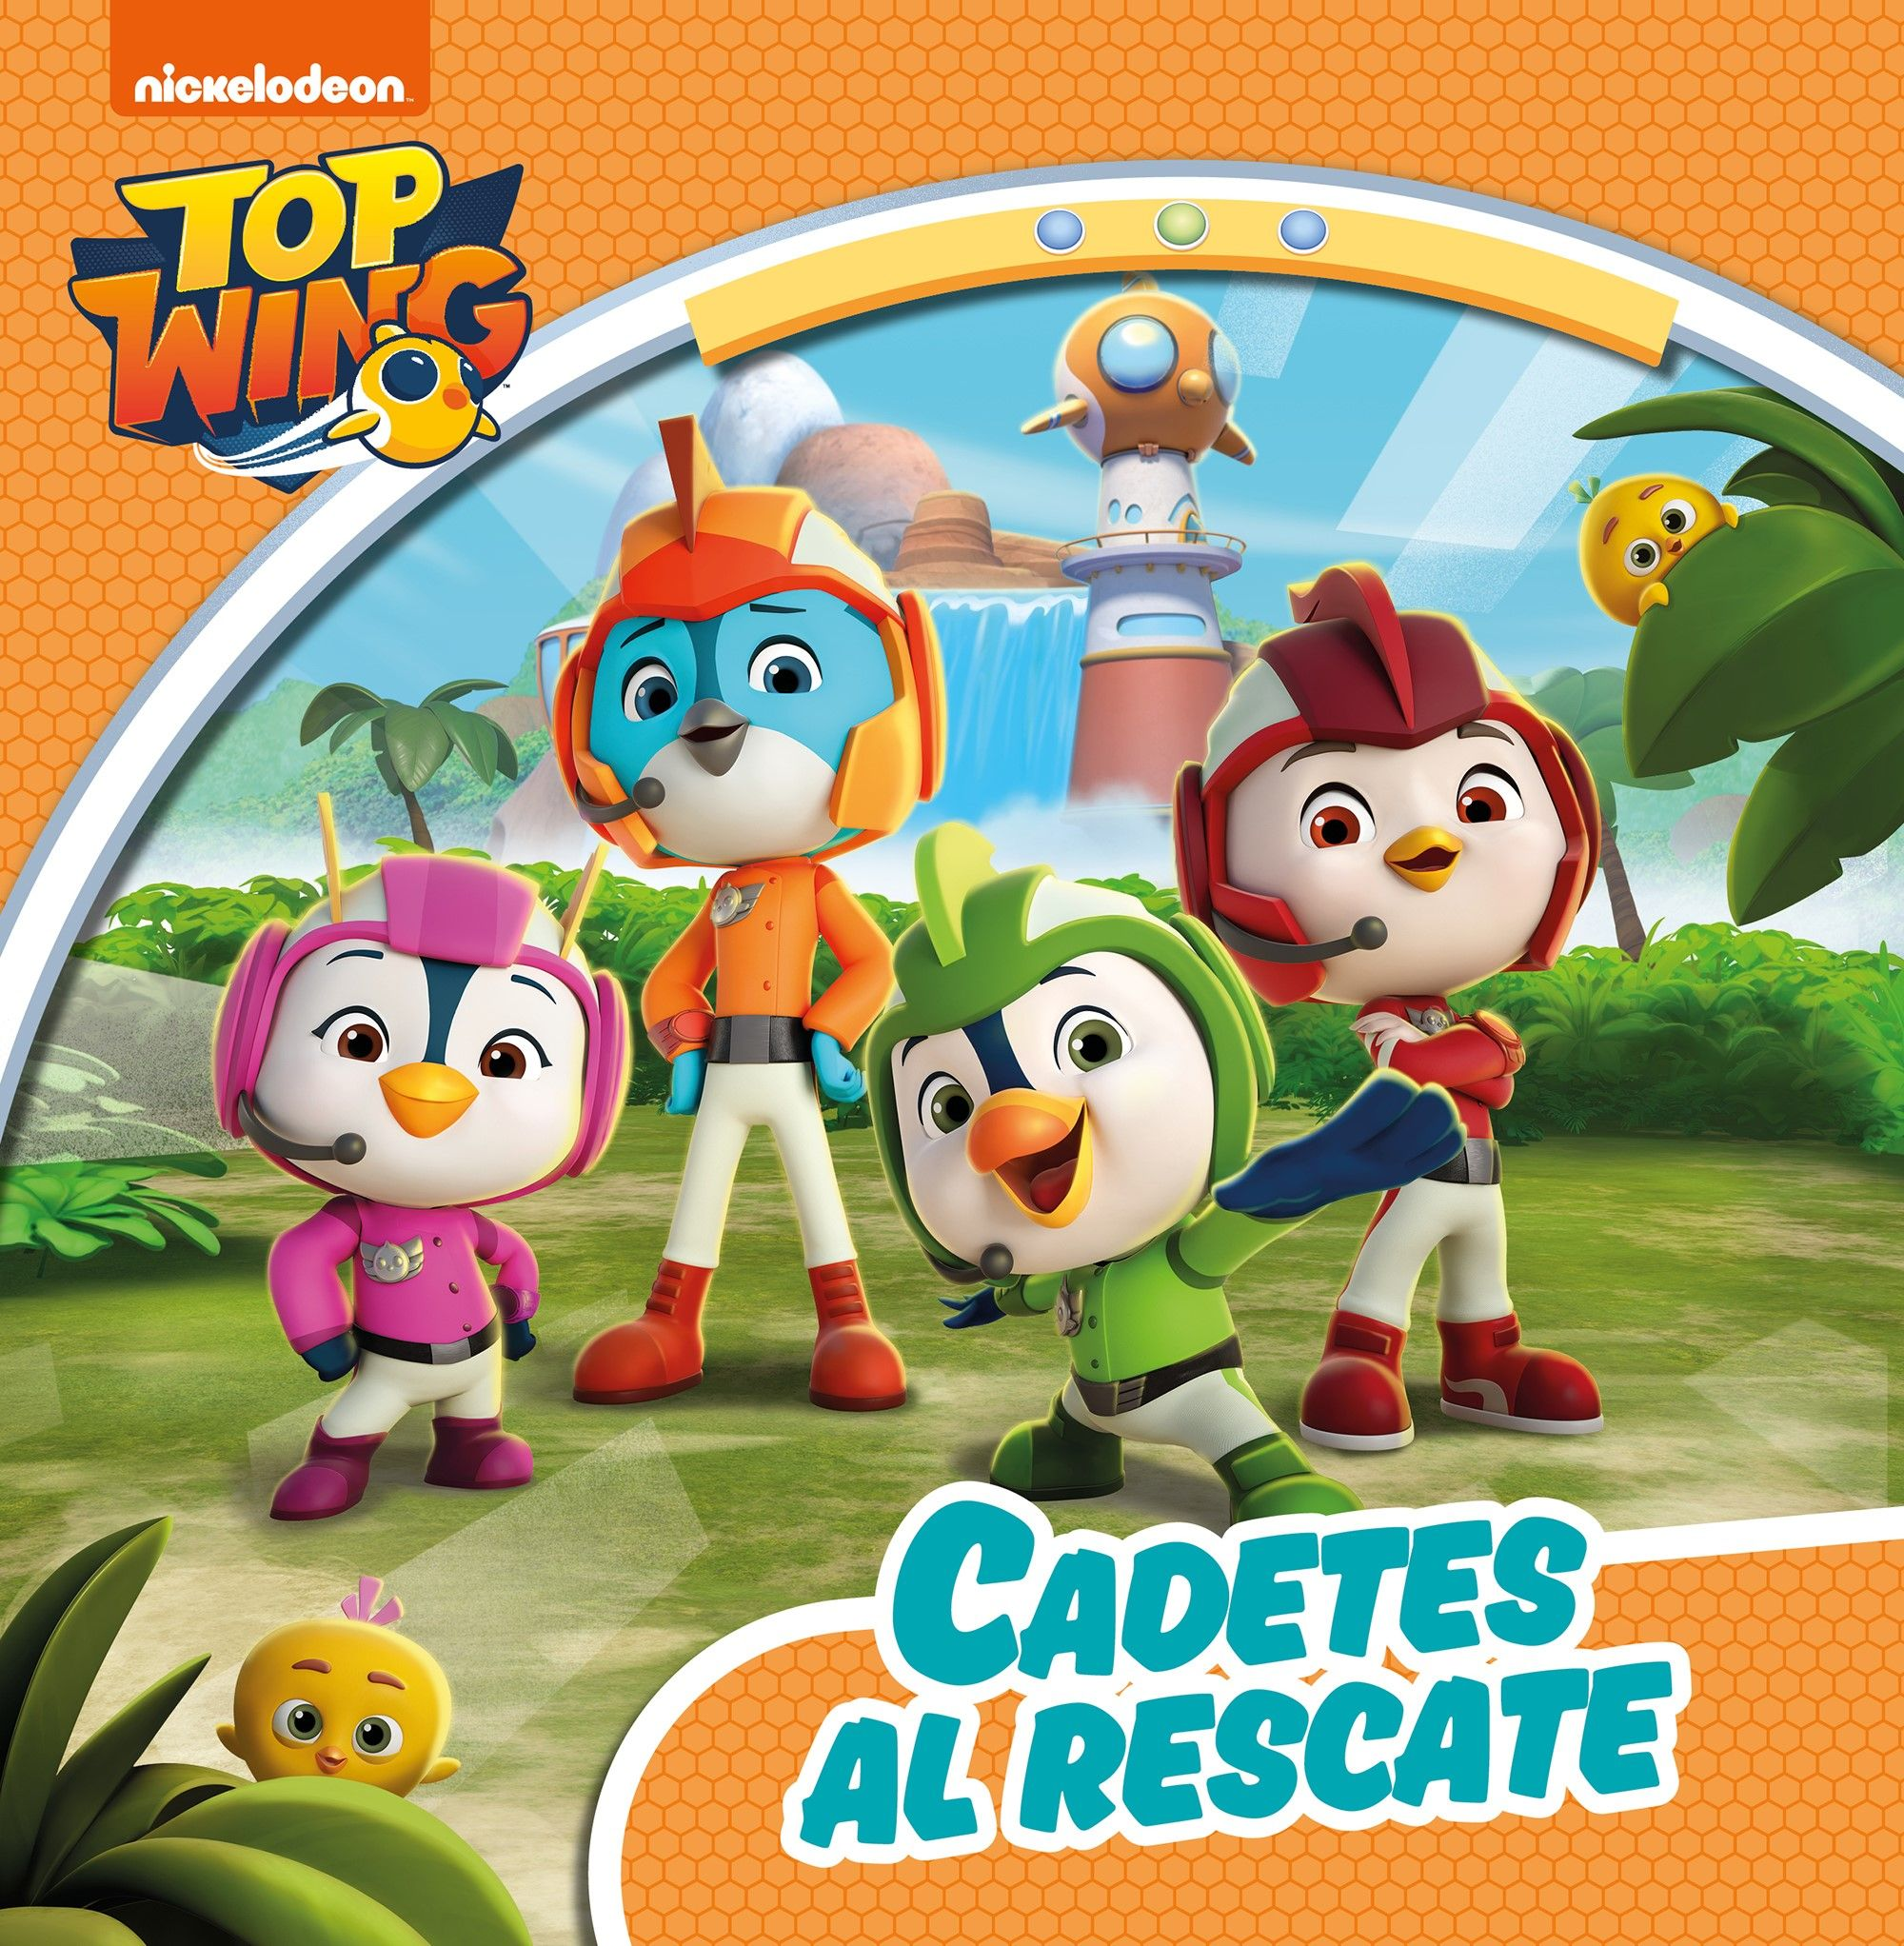 TOP WINGS CADETES AL RESCATE